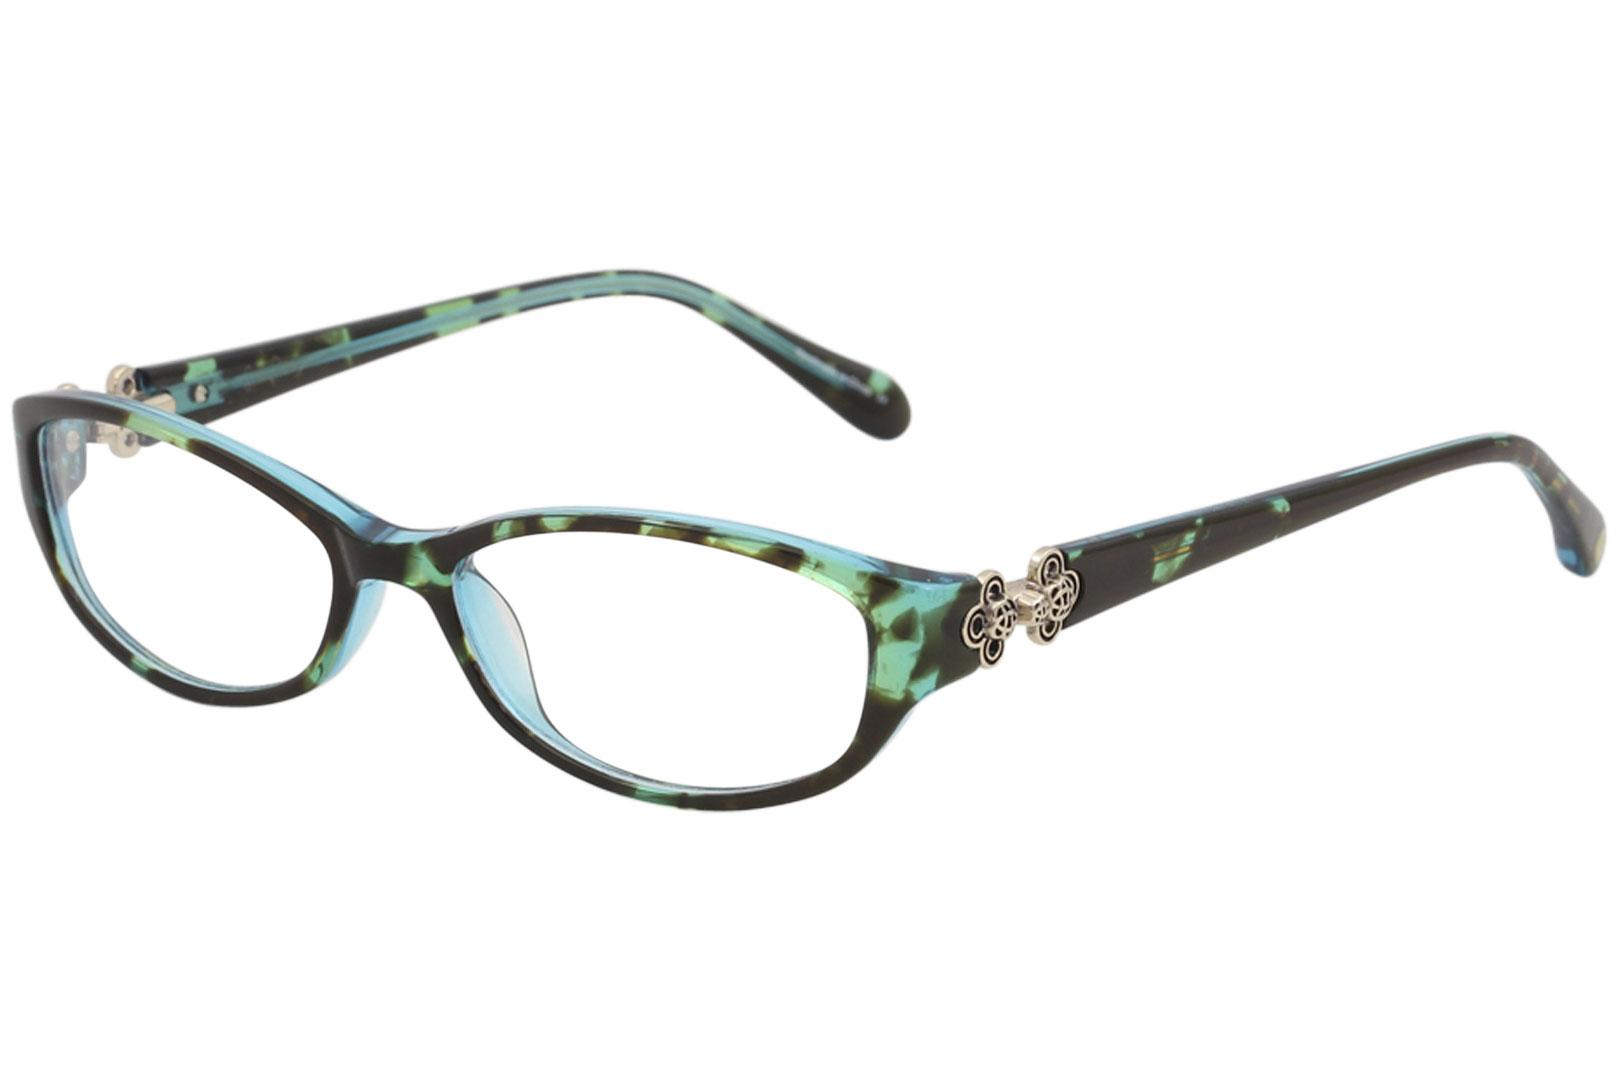 7aa961682b1 Lilly Pulitzer Women s Eyeglasses Kolby Full Rim Optical Frame by Lilly  Pulitzer. Touch to zoom